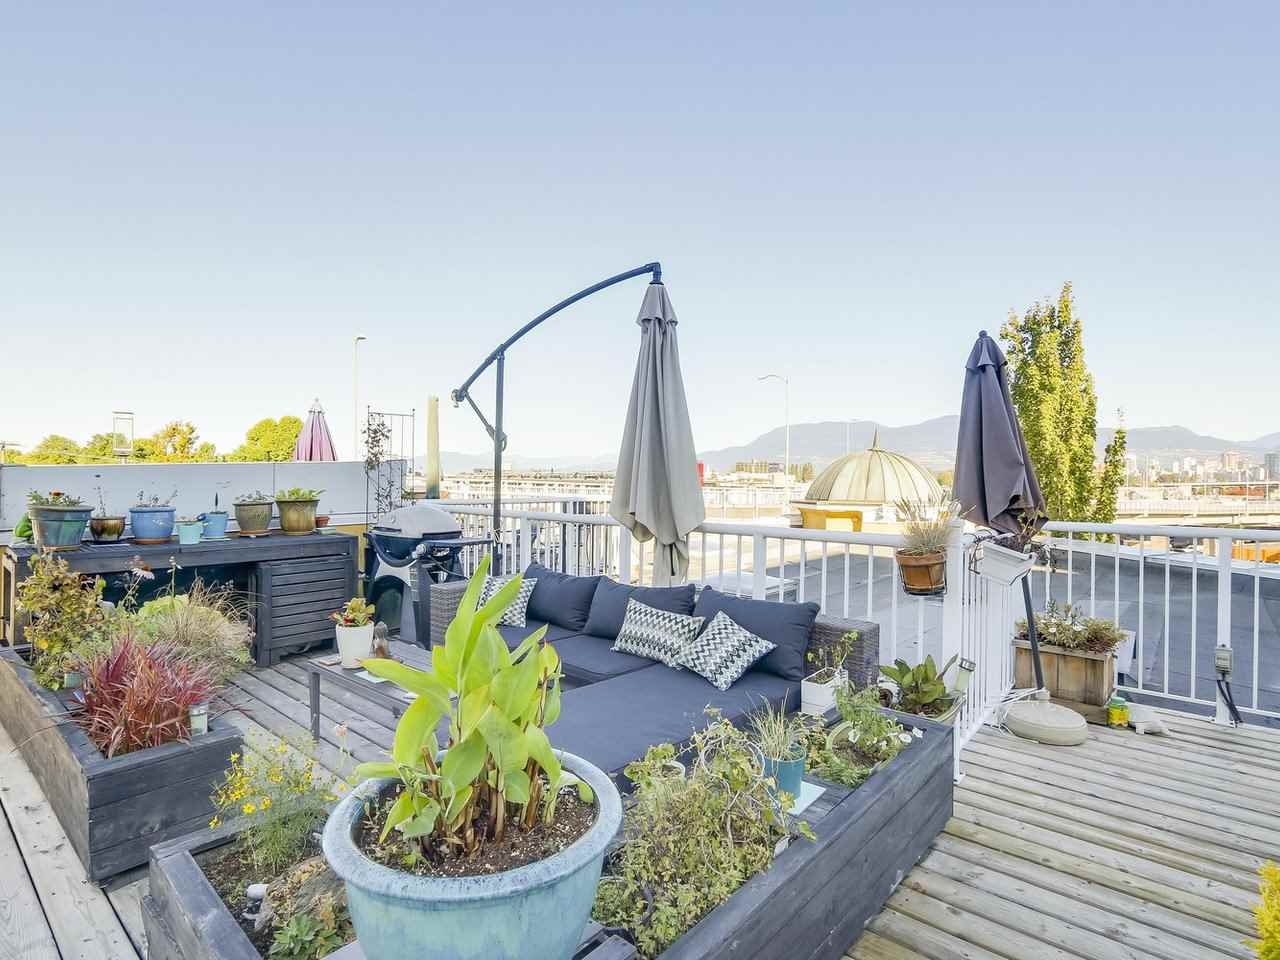 Bright top floor unit with one of only six roof top decks, decks are Limited Common Property for each strata lot.  Excellent location; steps from transit or walk to downtown, Granville Island, West 4th and South Granville shopping.  Unit features granite countertops, stainless steel appliances and upgraded fireplace.  Enjoy city and mountain views from bedroom and living room. Walk score 97. Open Sat/Sun 1-4 pm Oct 14/15